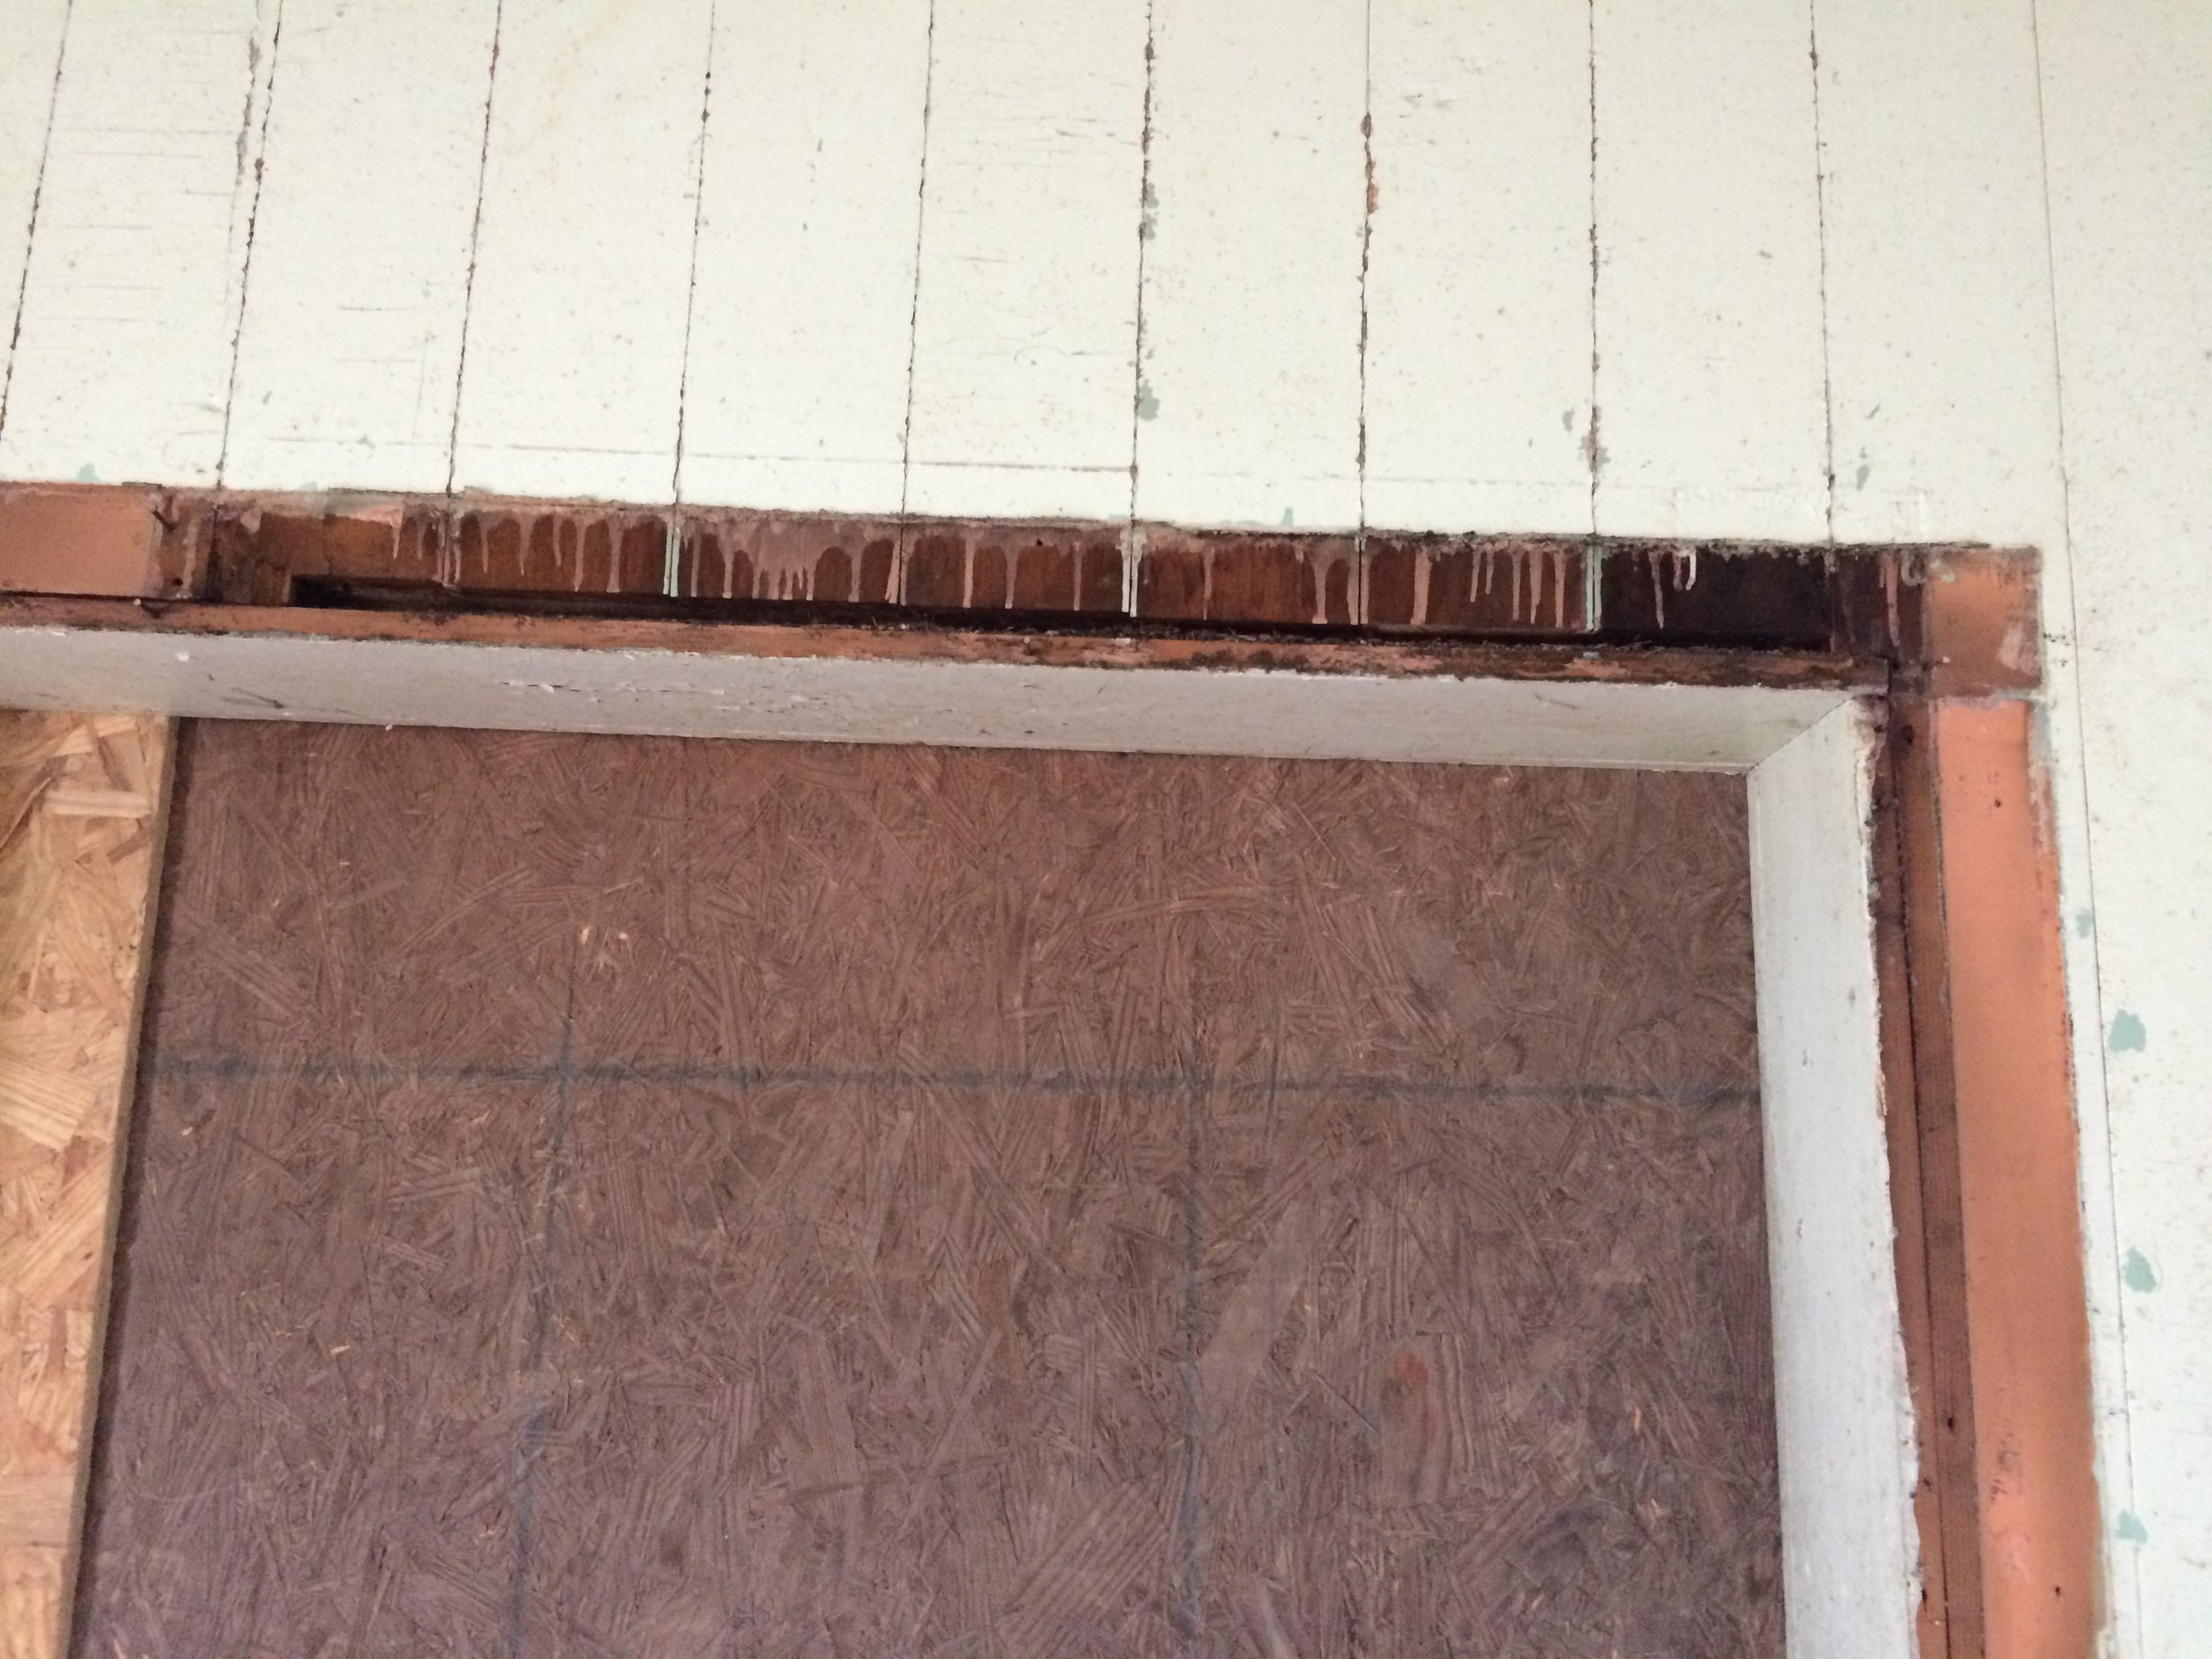 Removal of facing trim on the door opening revealed evidence of an original window.